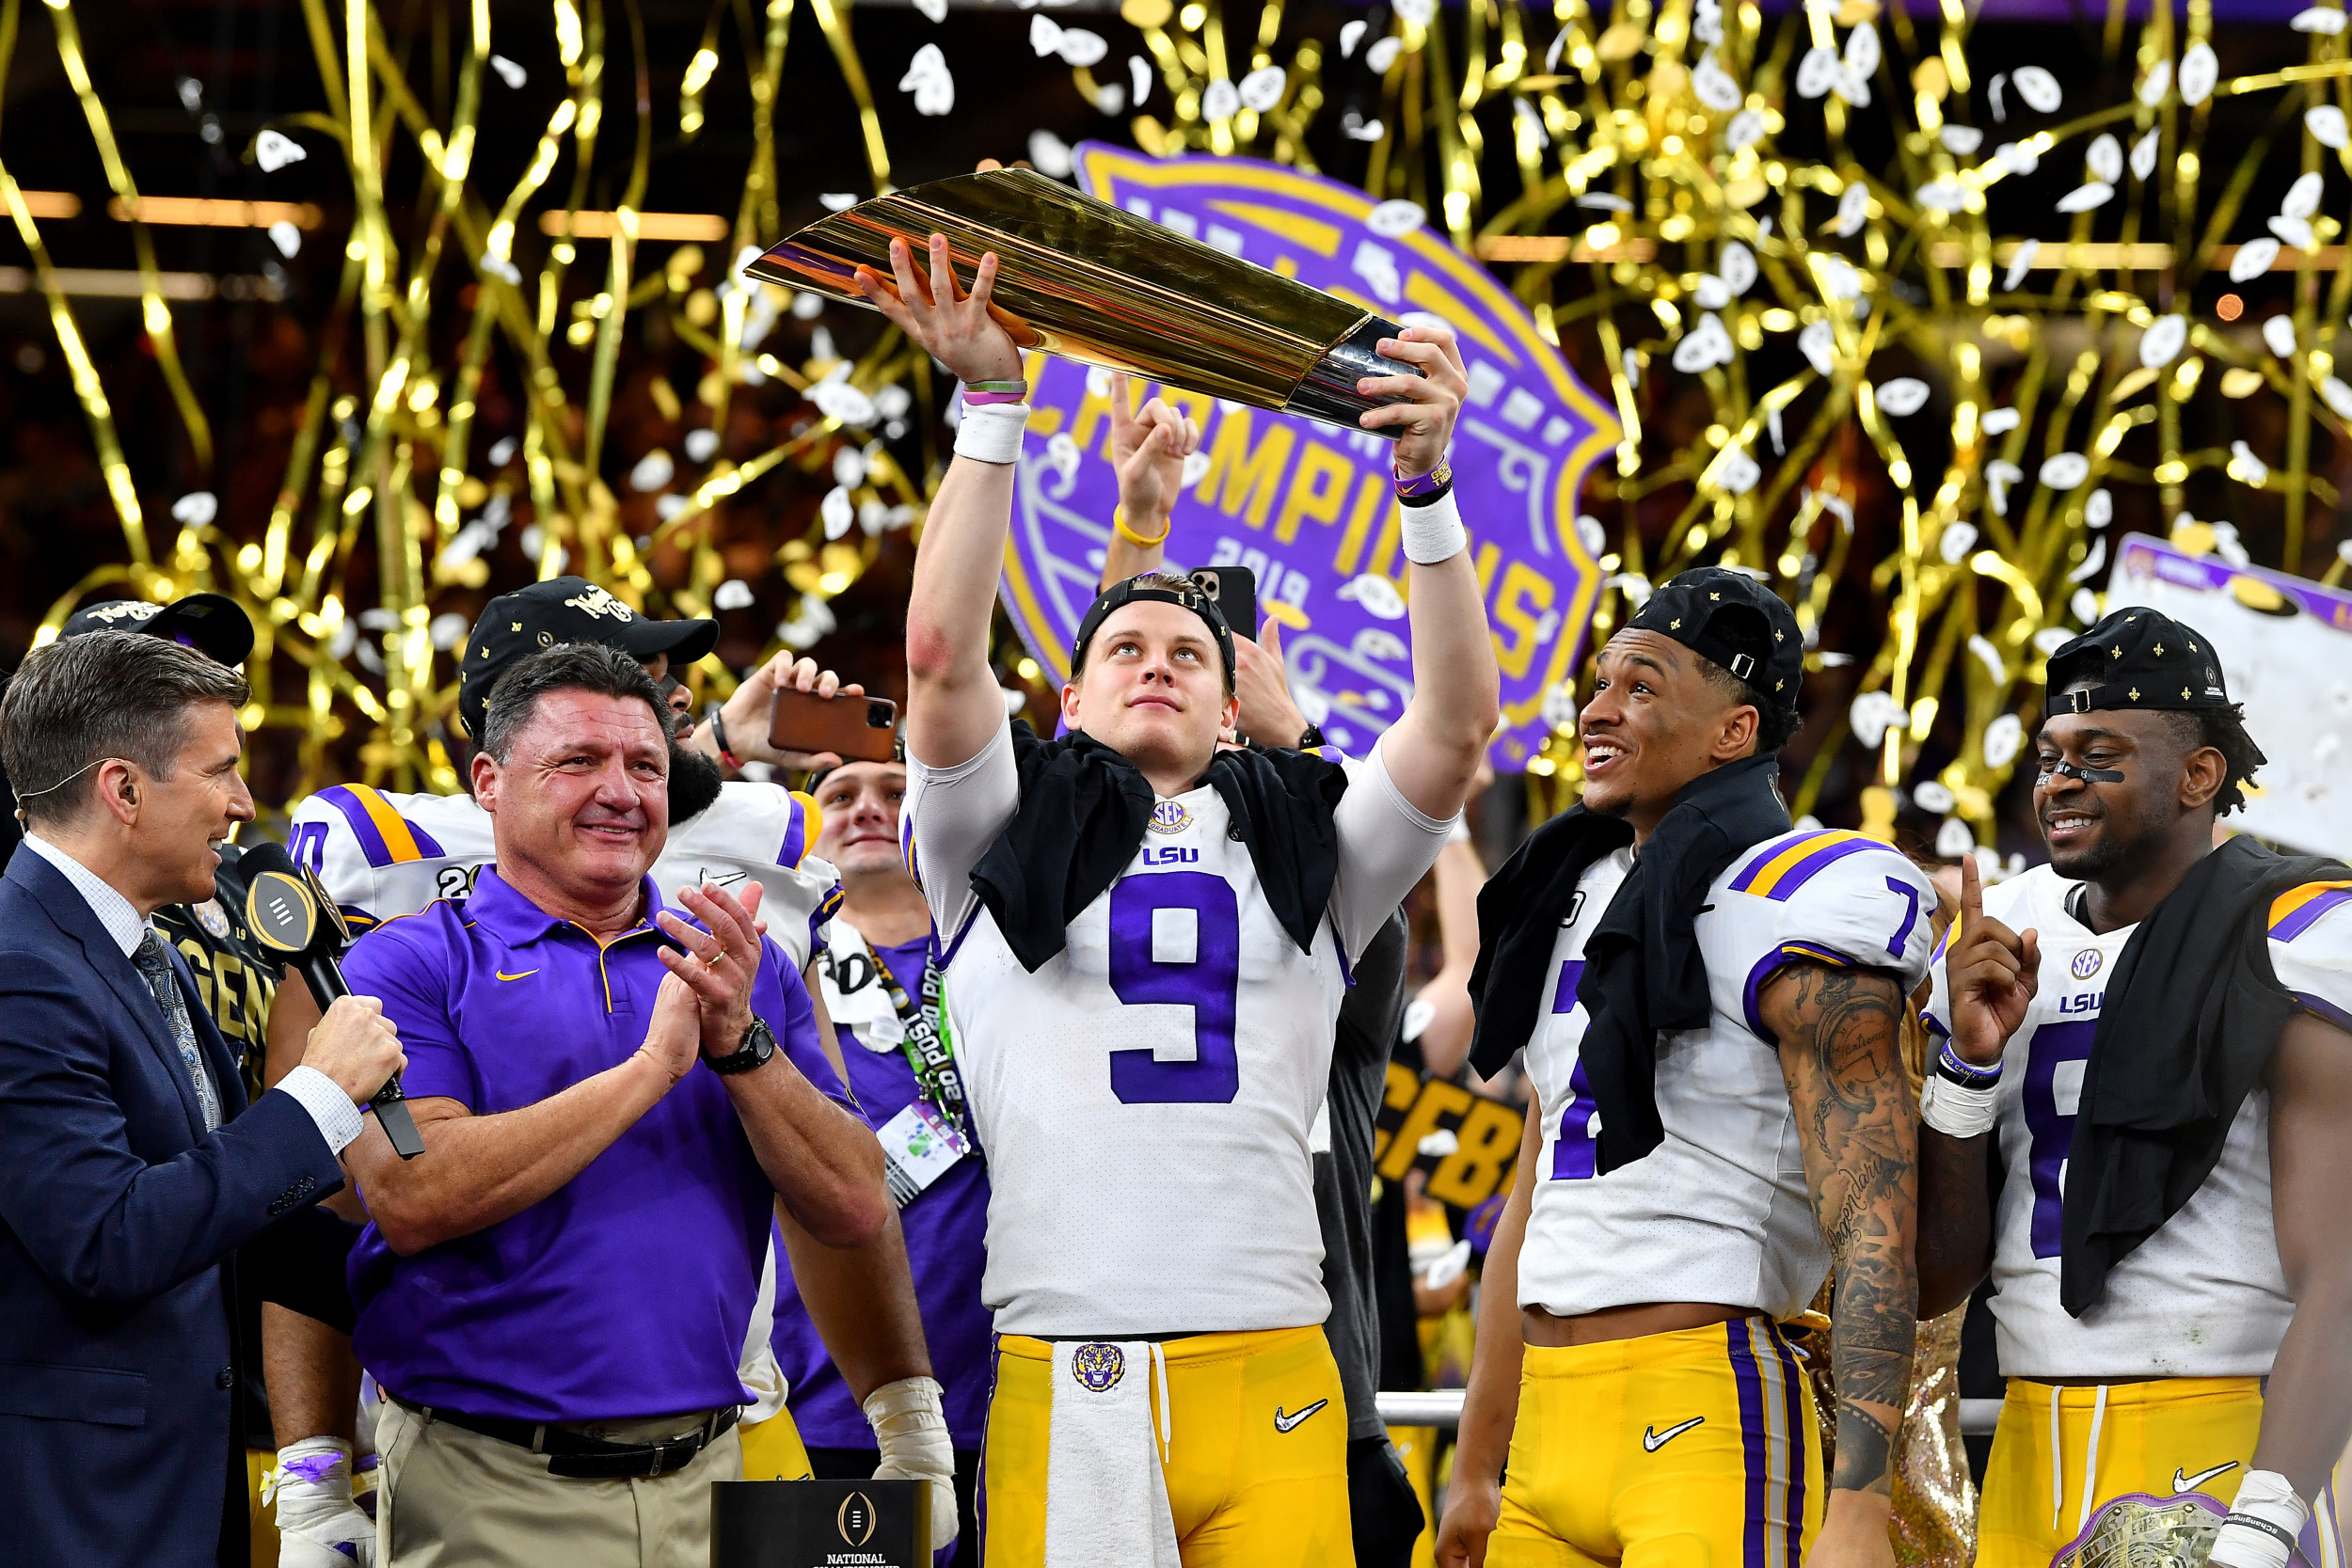 Lsu Title Parade Route Where To Watch College Football Champions On Saturday Live Stream Tv Channel Time